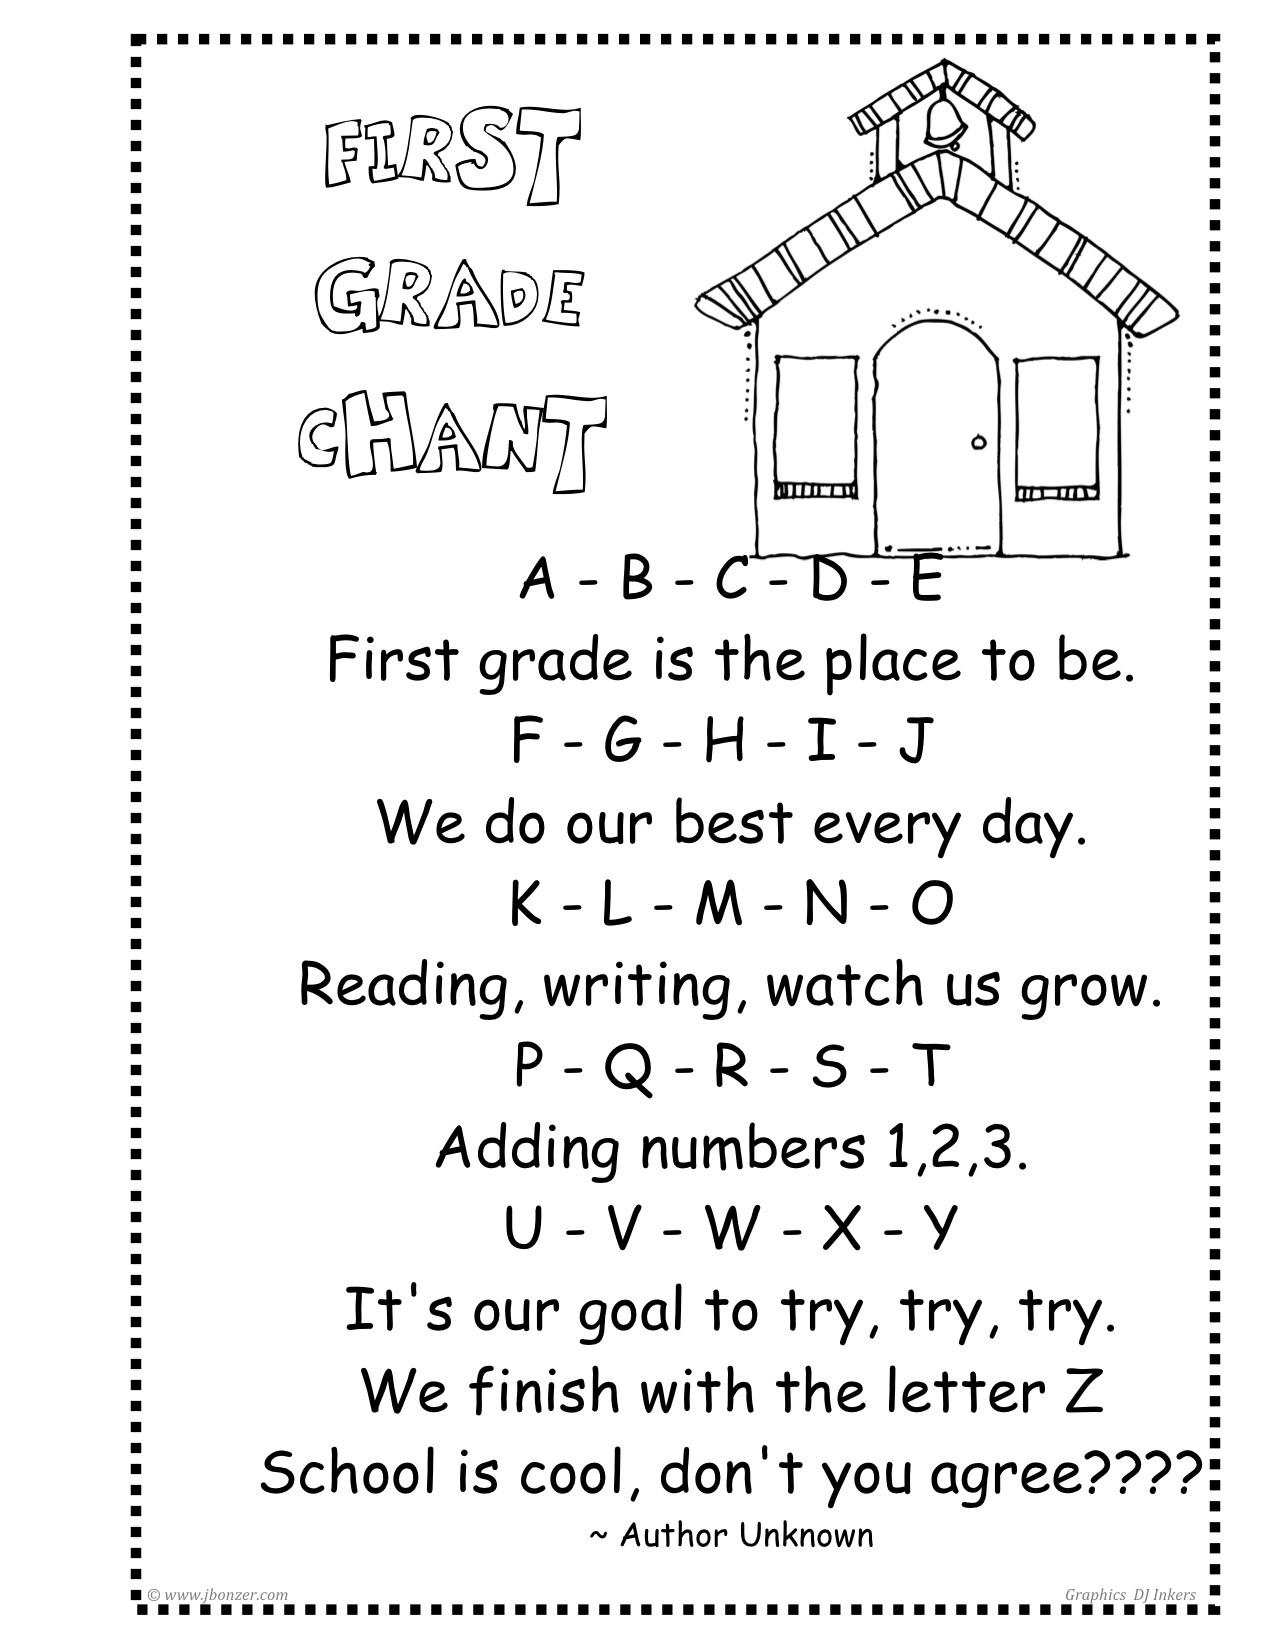 Pics Photos - Poems About First Grade Teachers